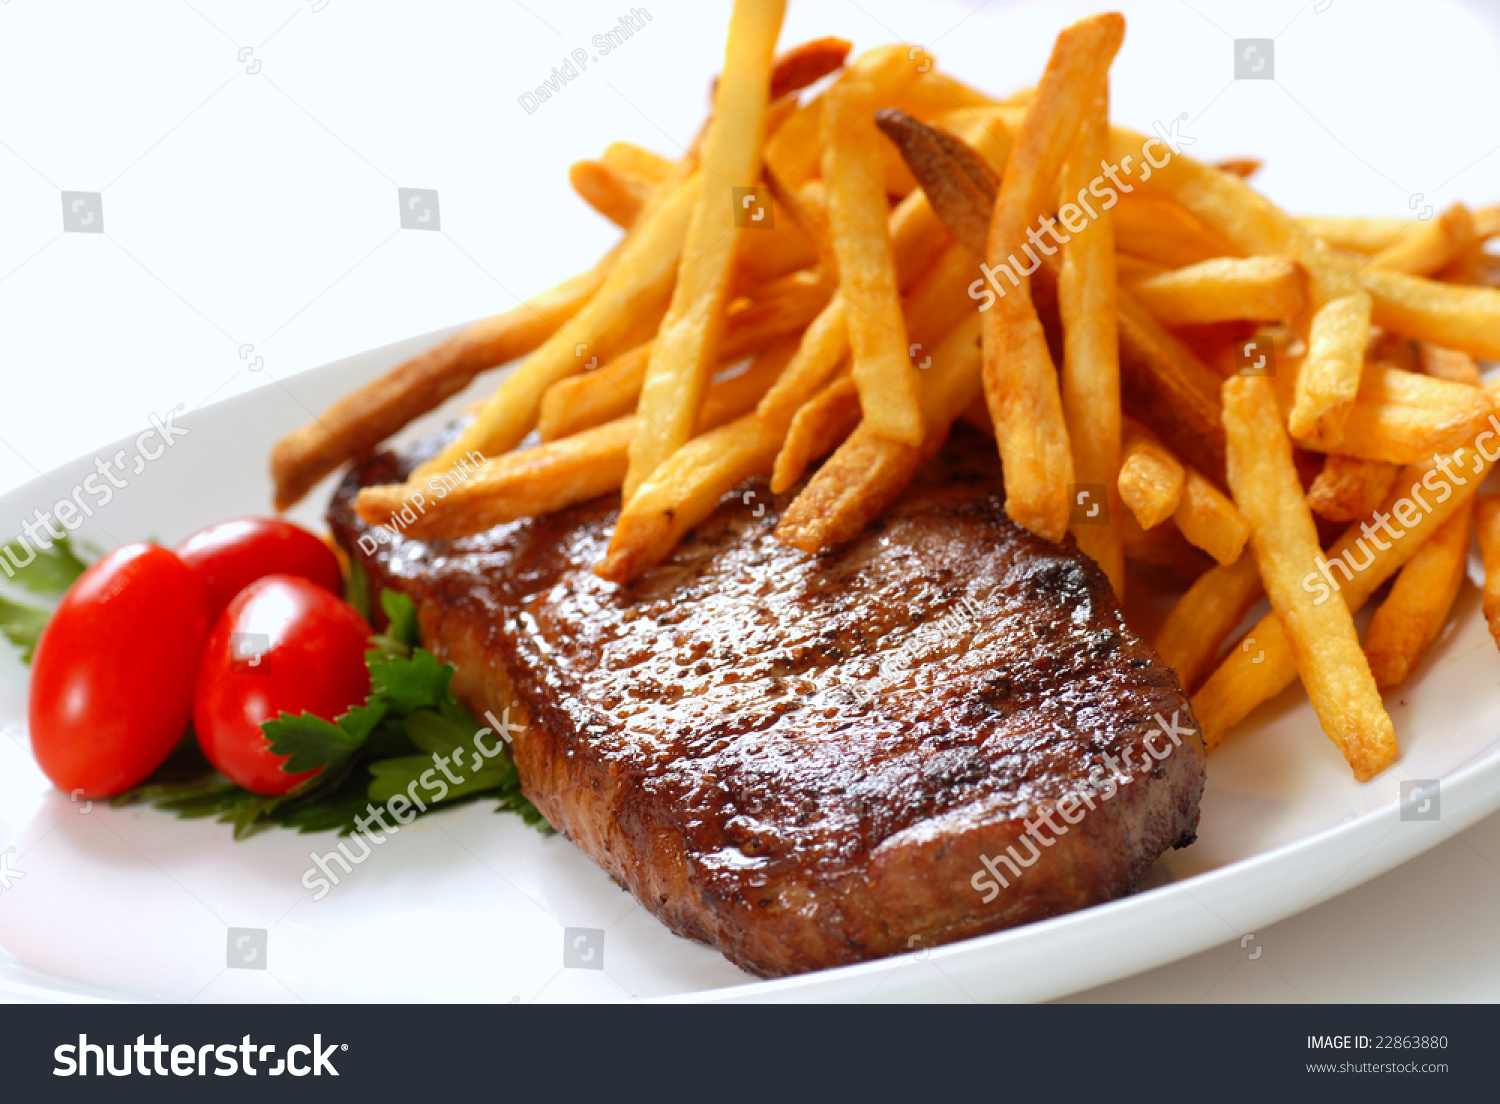 how to say steak in french